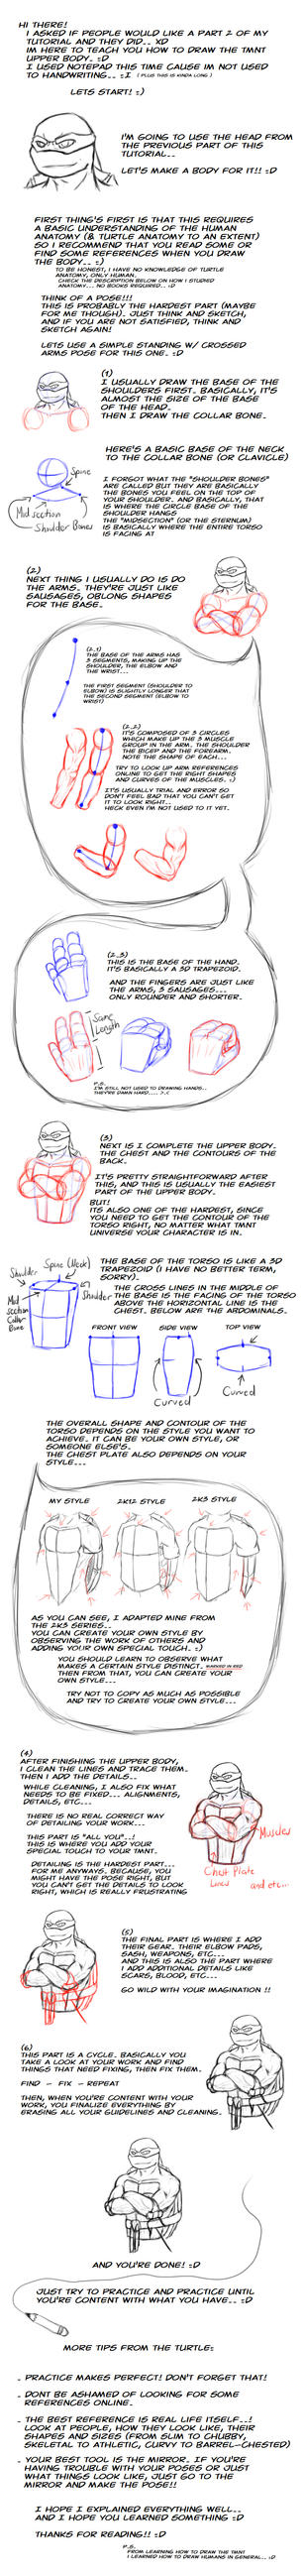 TMNT - How to Draw: Upper Body by NinjaTertel